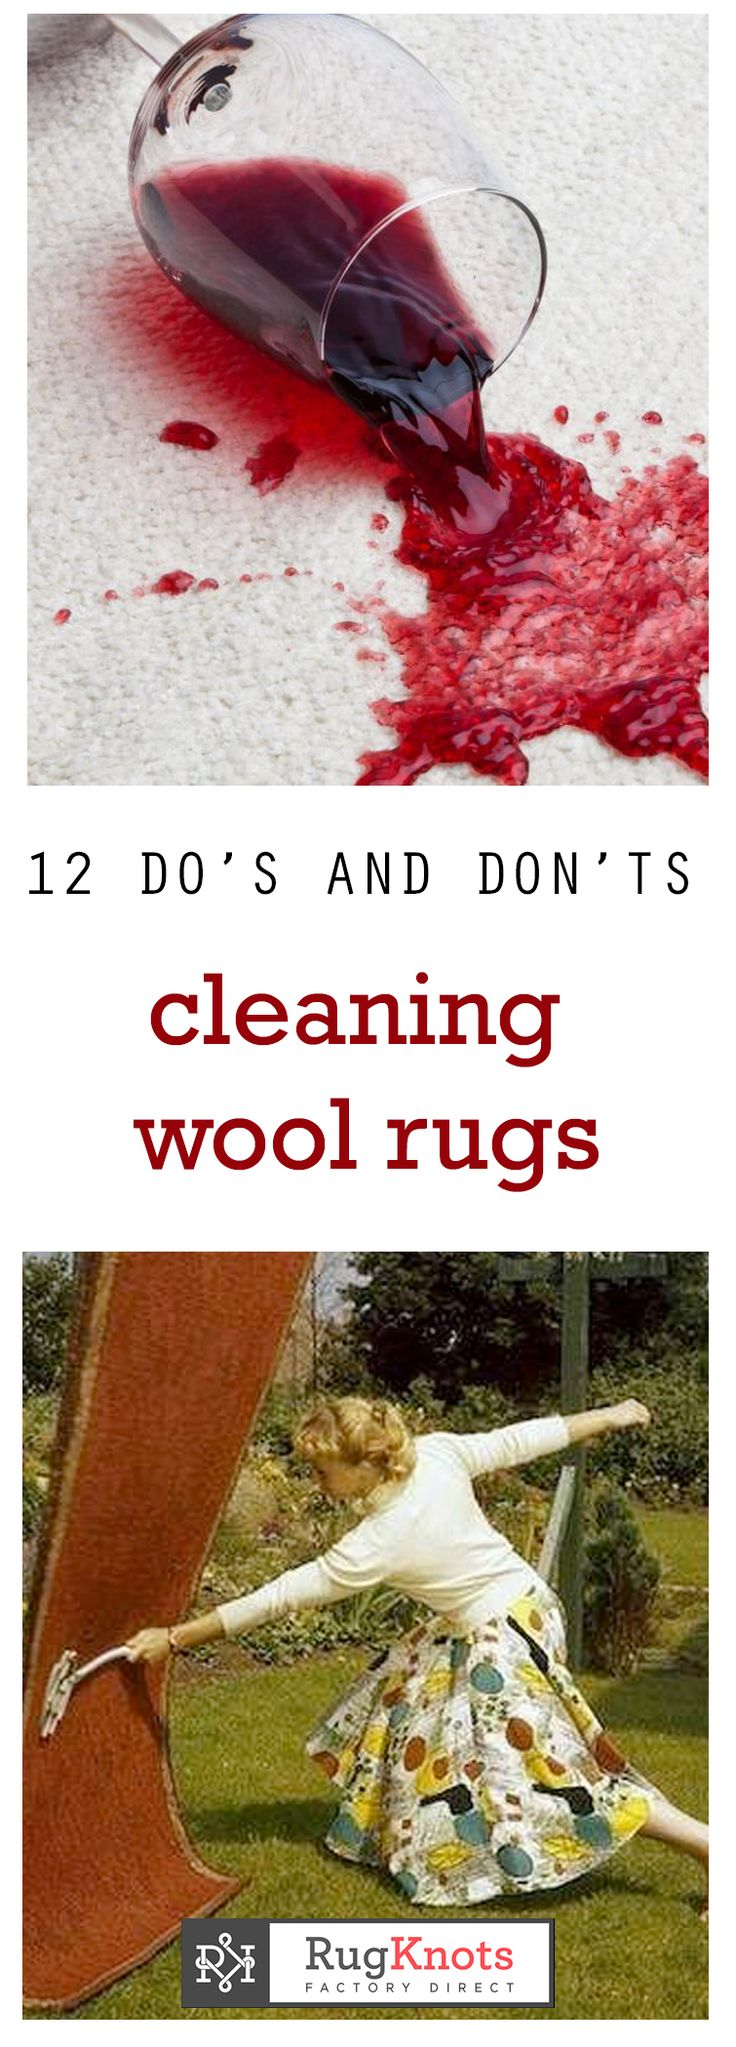 Spilling on a wool rug isn't the end of the world... if you know what to do! Check out our 12 tips on cleaning wool rugs, whether it's a spill or simple vacuuming.